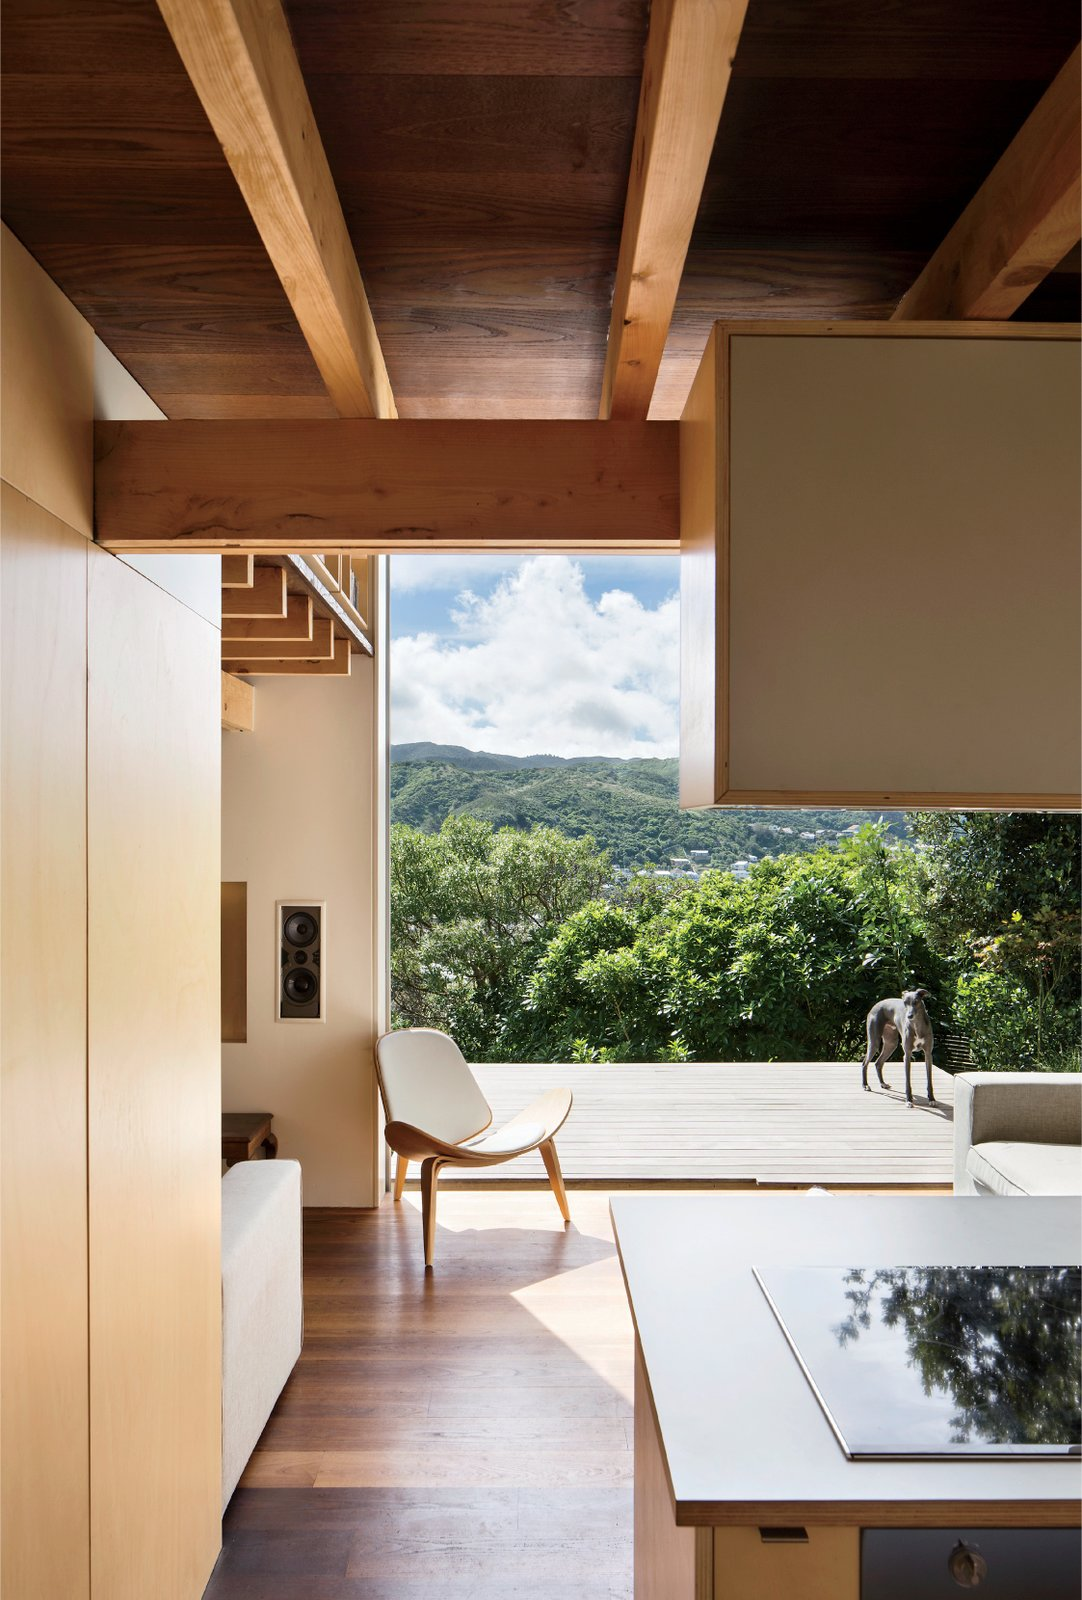 The home also extends into outdoor panoramas, even—and especially—from the ground floor, where a westward-facing deck cantilevers out into the lush landscape. Best Photos